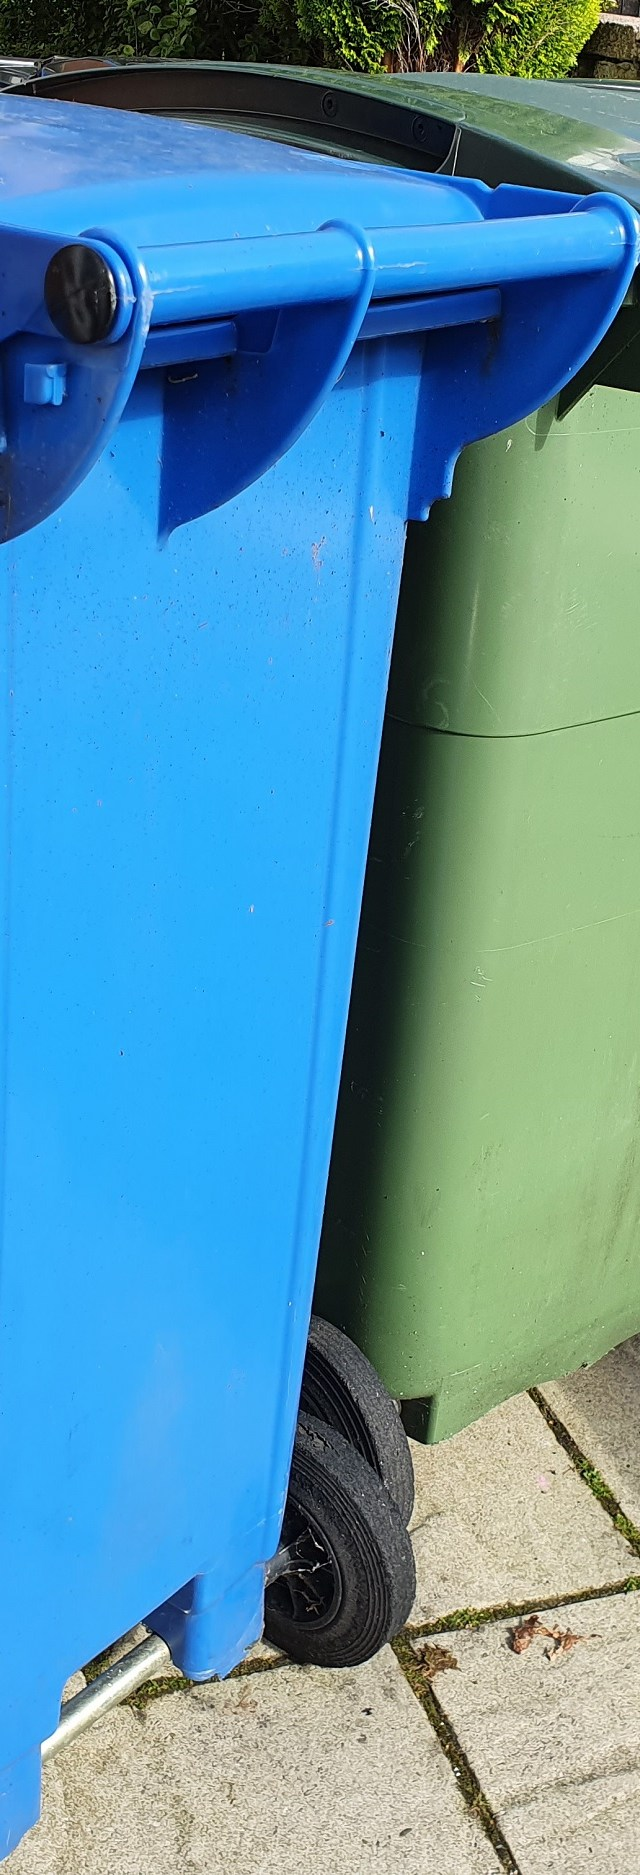 Fortnightly blue bin collections set to resume in Stockport